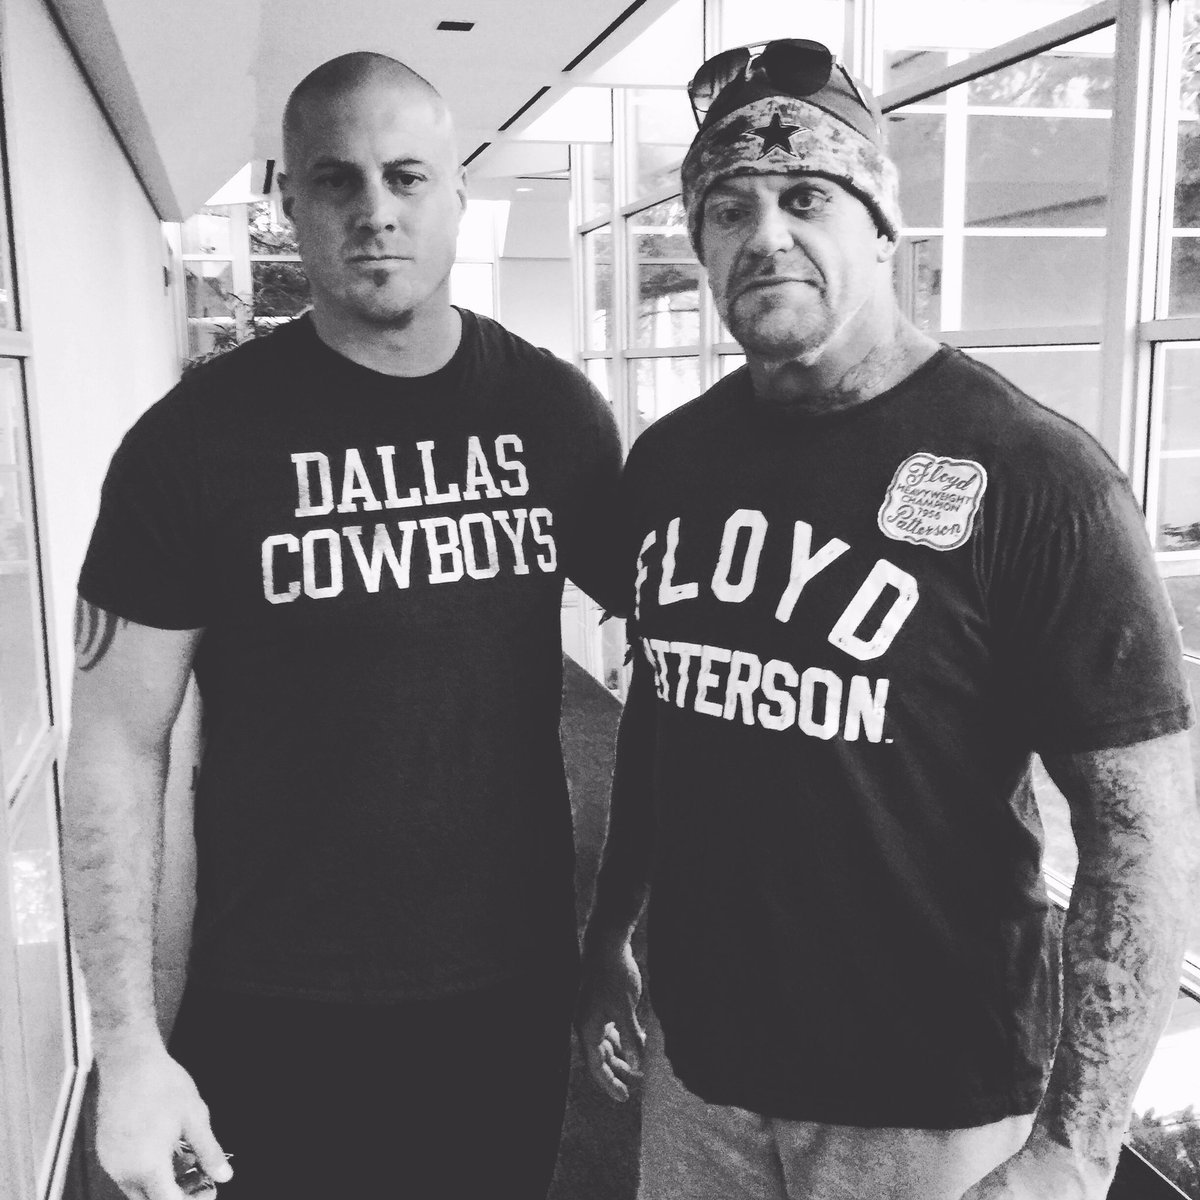 The Undertaker!  #WrestleMania @dallascowboys https://t.co/ecgdQMq7nB